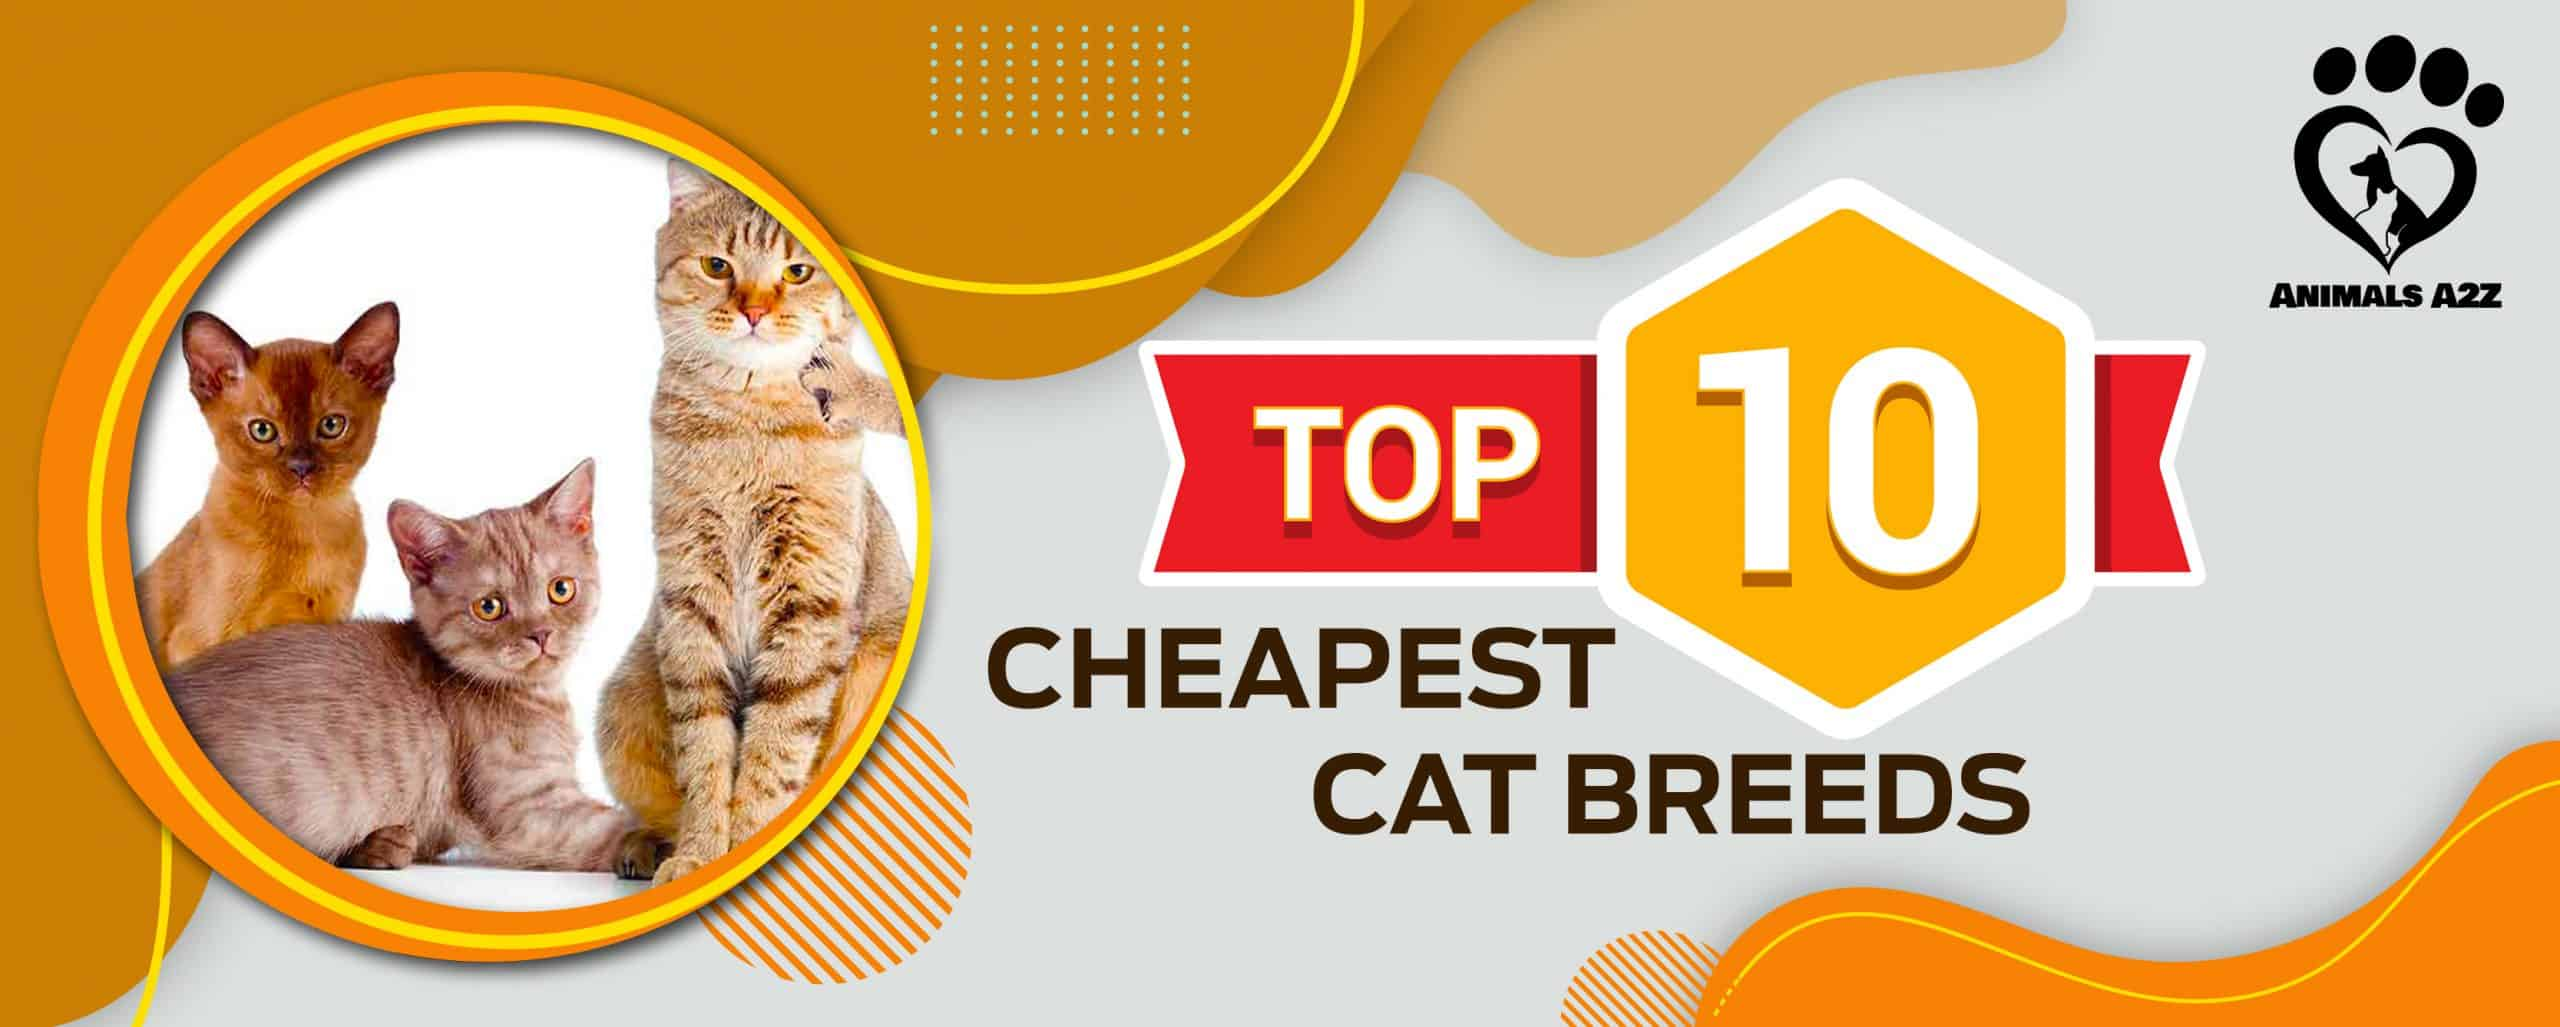 top 10 cheapest cat breeds